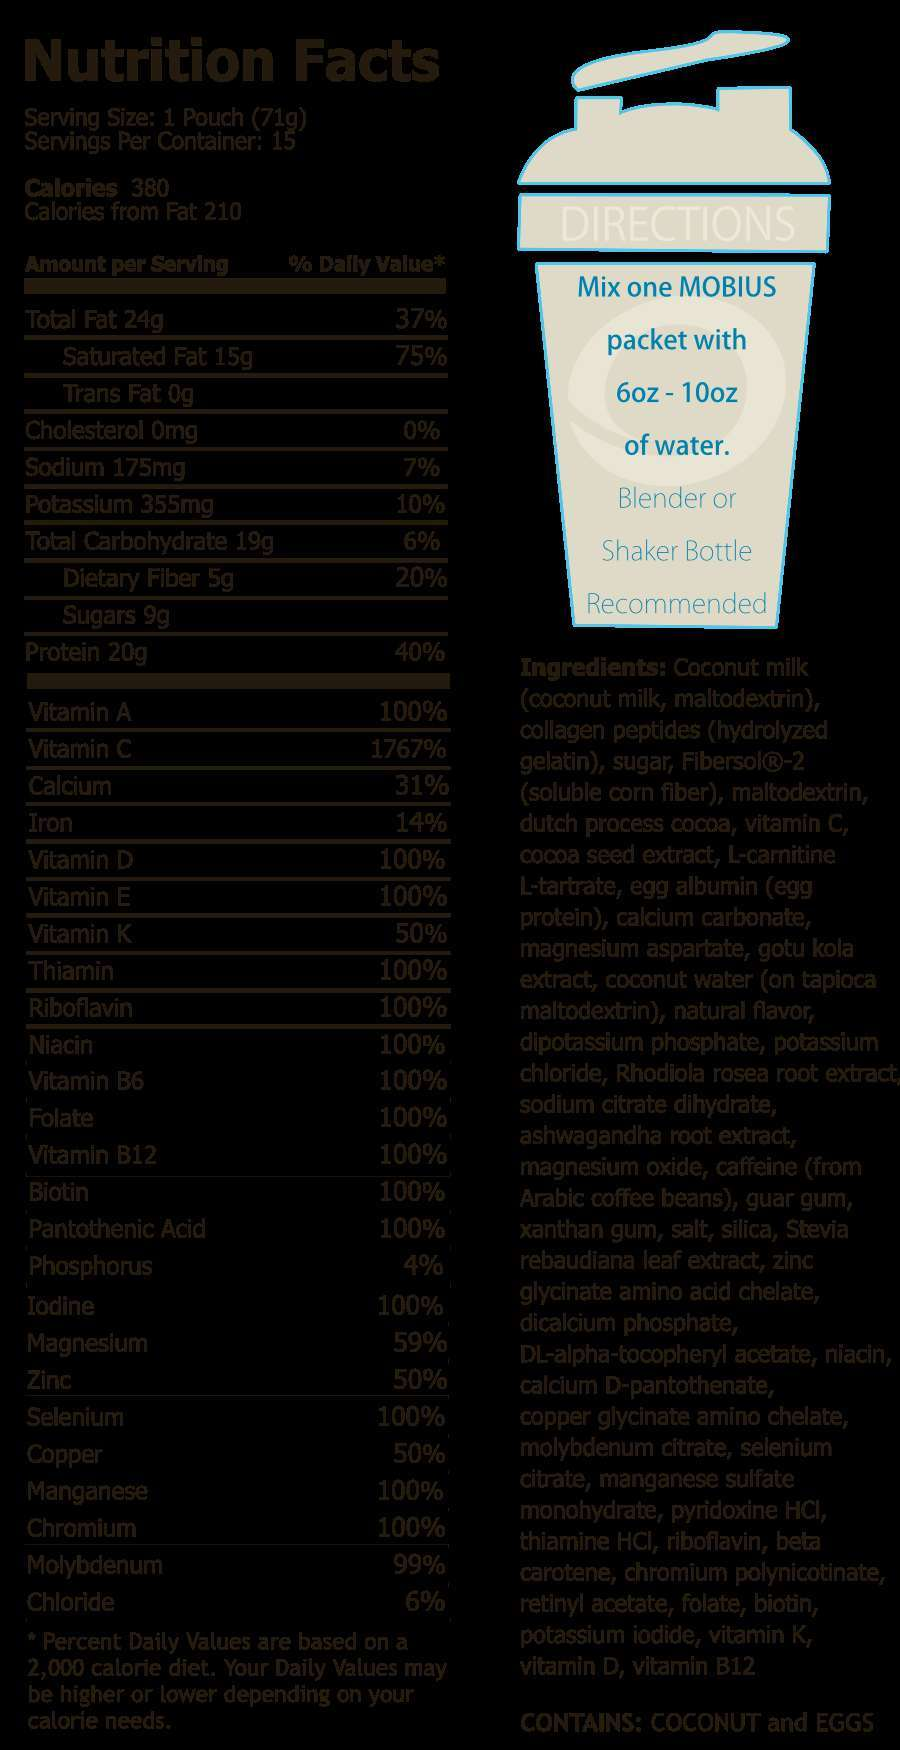 Complete nutritional information on our favorite meal replacement breakfast shake.